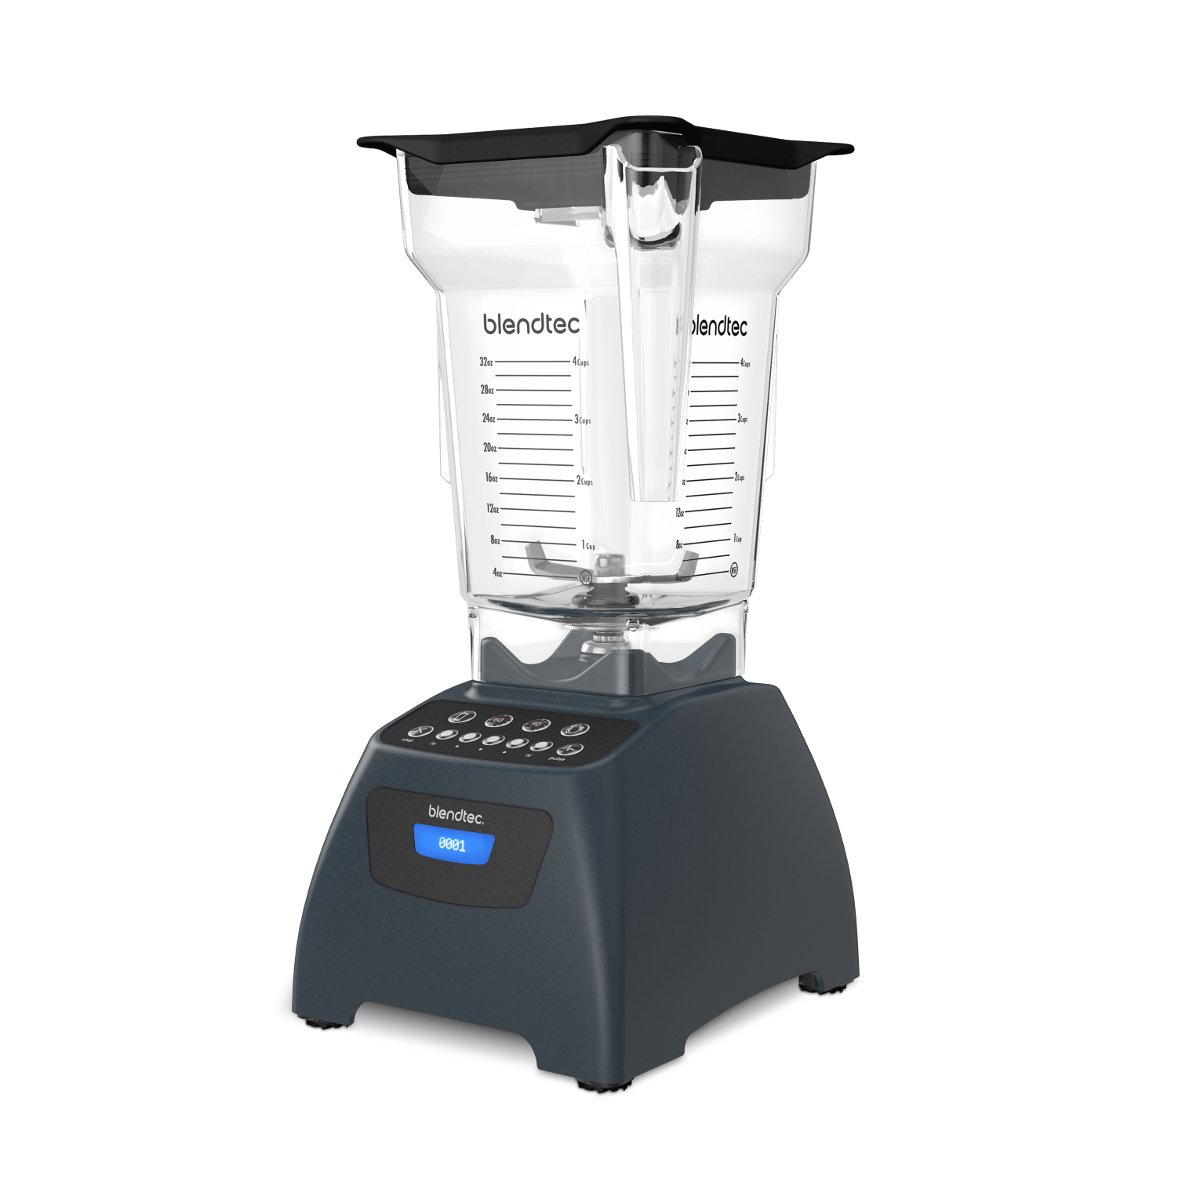 Blendtec Classic 575 Slate Blender with FourSide Jar